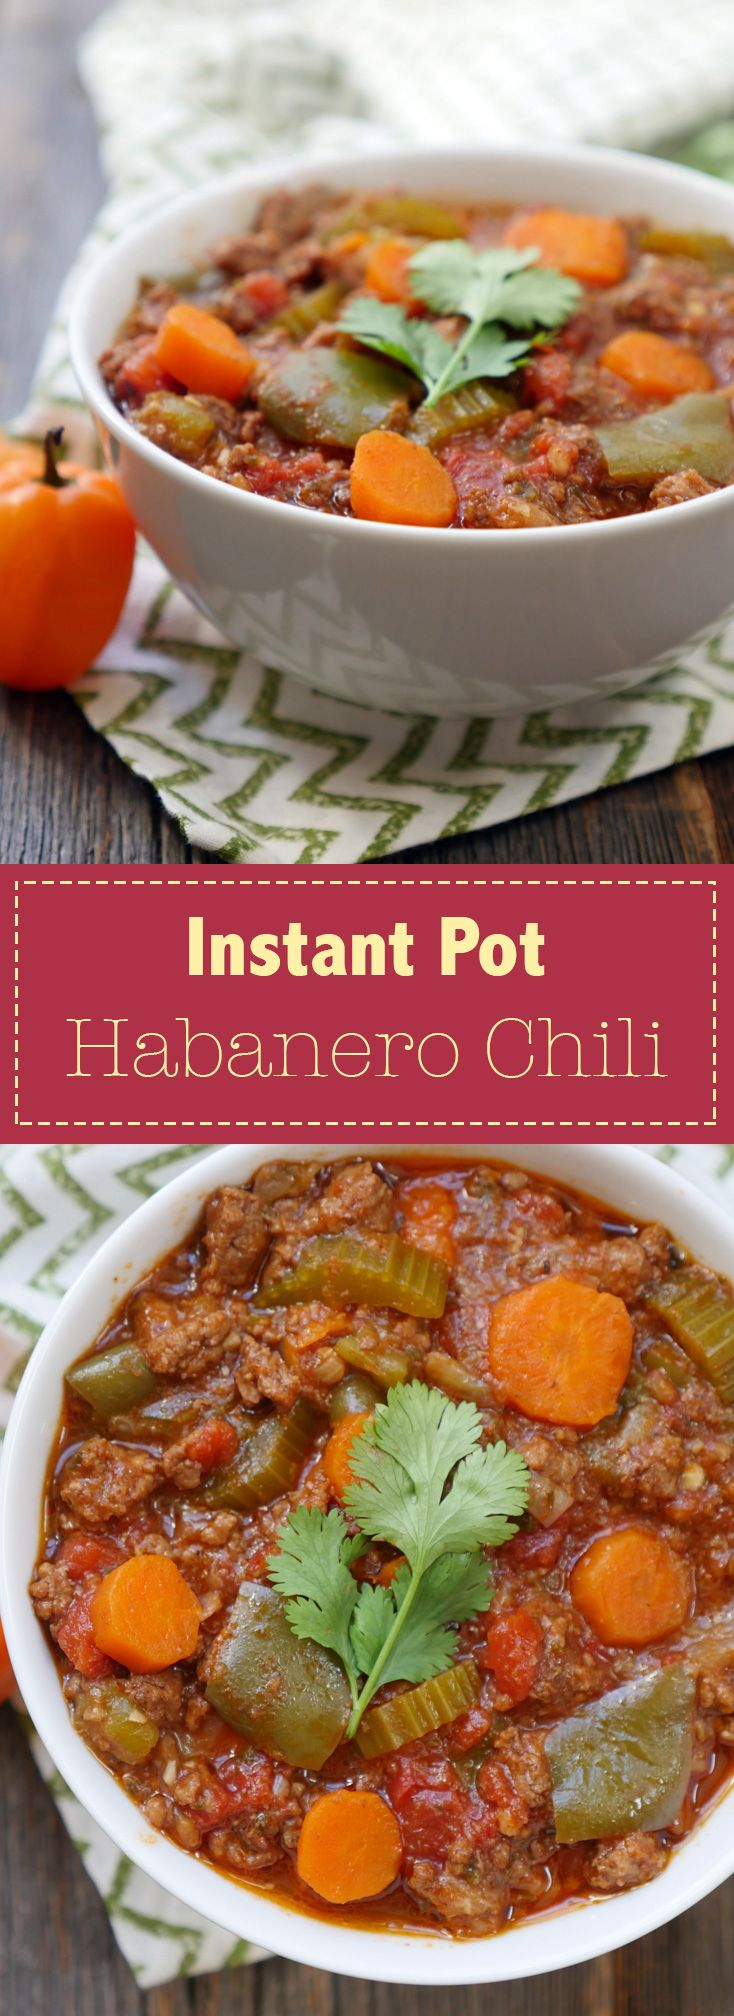 This Instant Pot Habanero Chili is a hearty dish that tastes slow cooked but can be ready to eat in less than an hour! Recipe by Ashley of MyHeartBeets.com